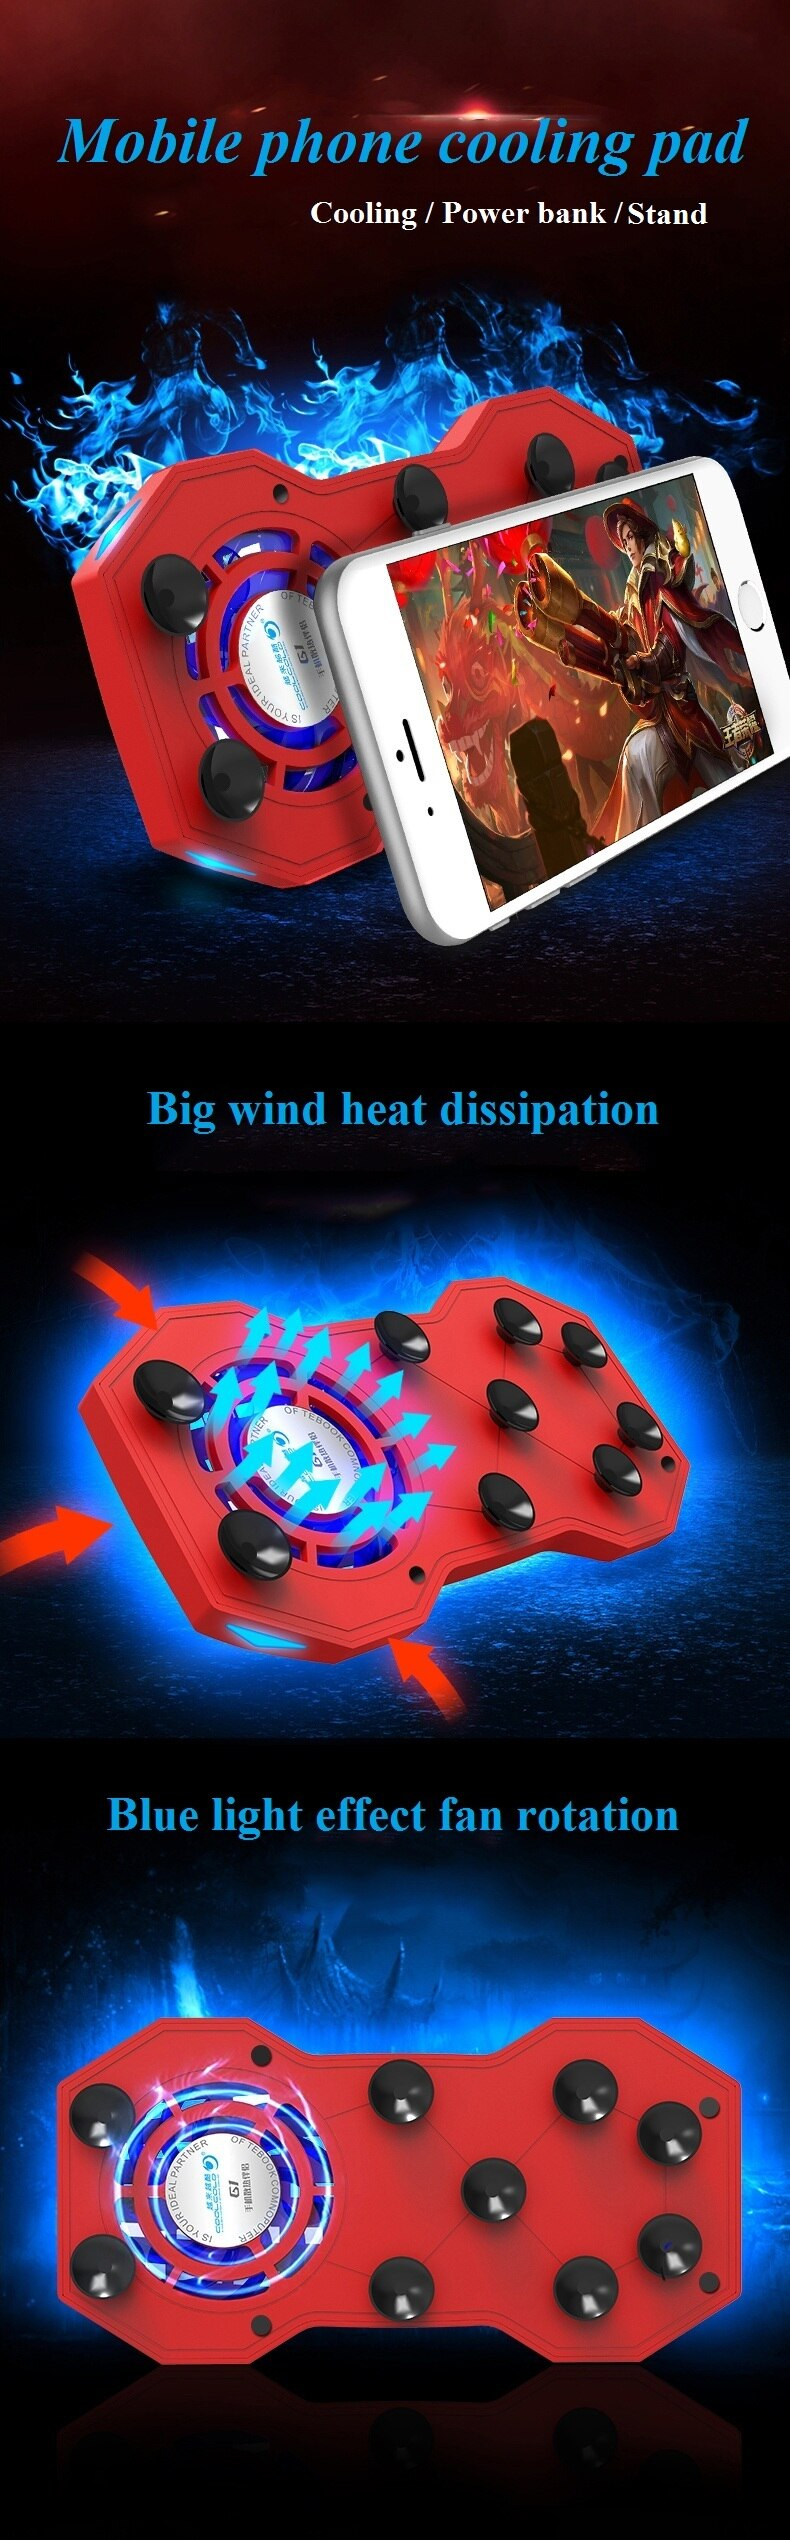 2019 New Mobile Phone Radiator Adjustable Cooling Pad Heat Sink Fan Handle Game Holder Stand Mute With Mini Power Bank